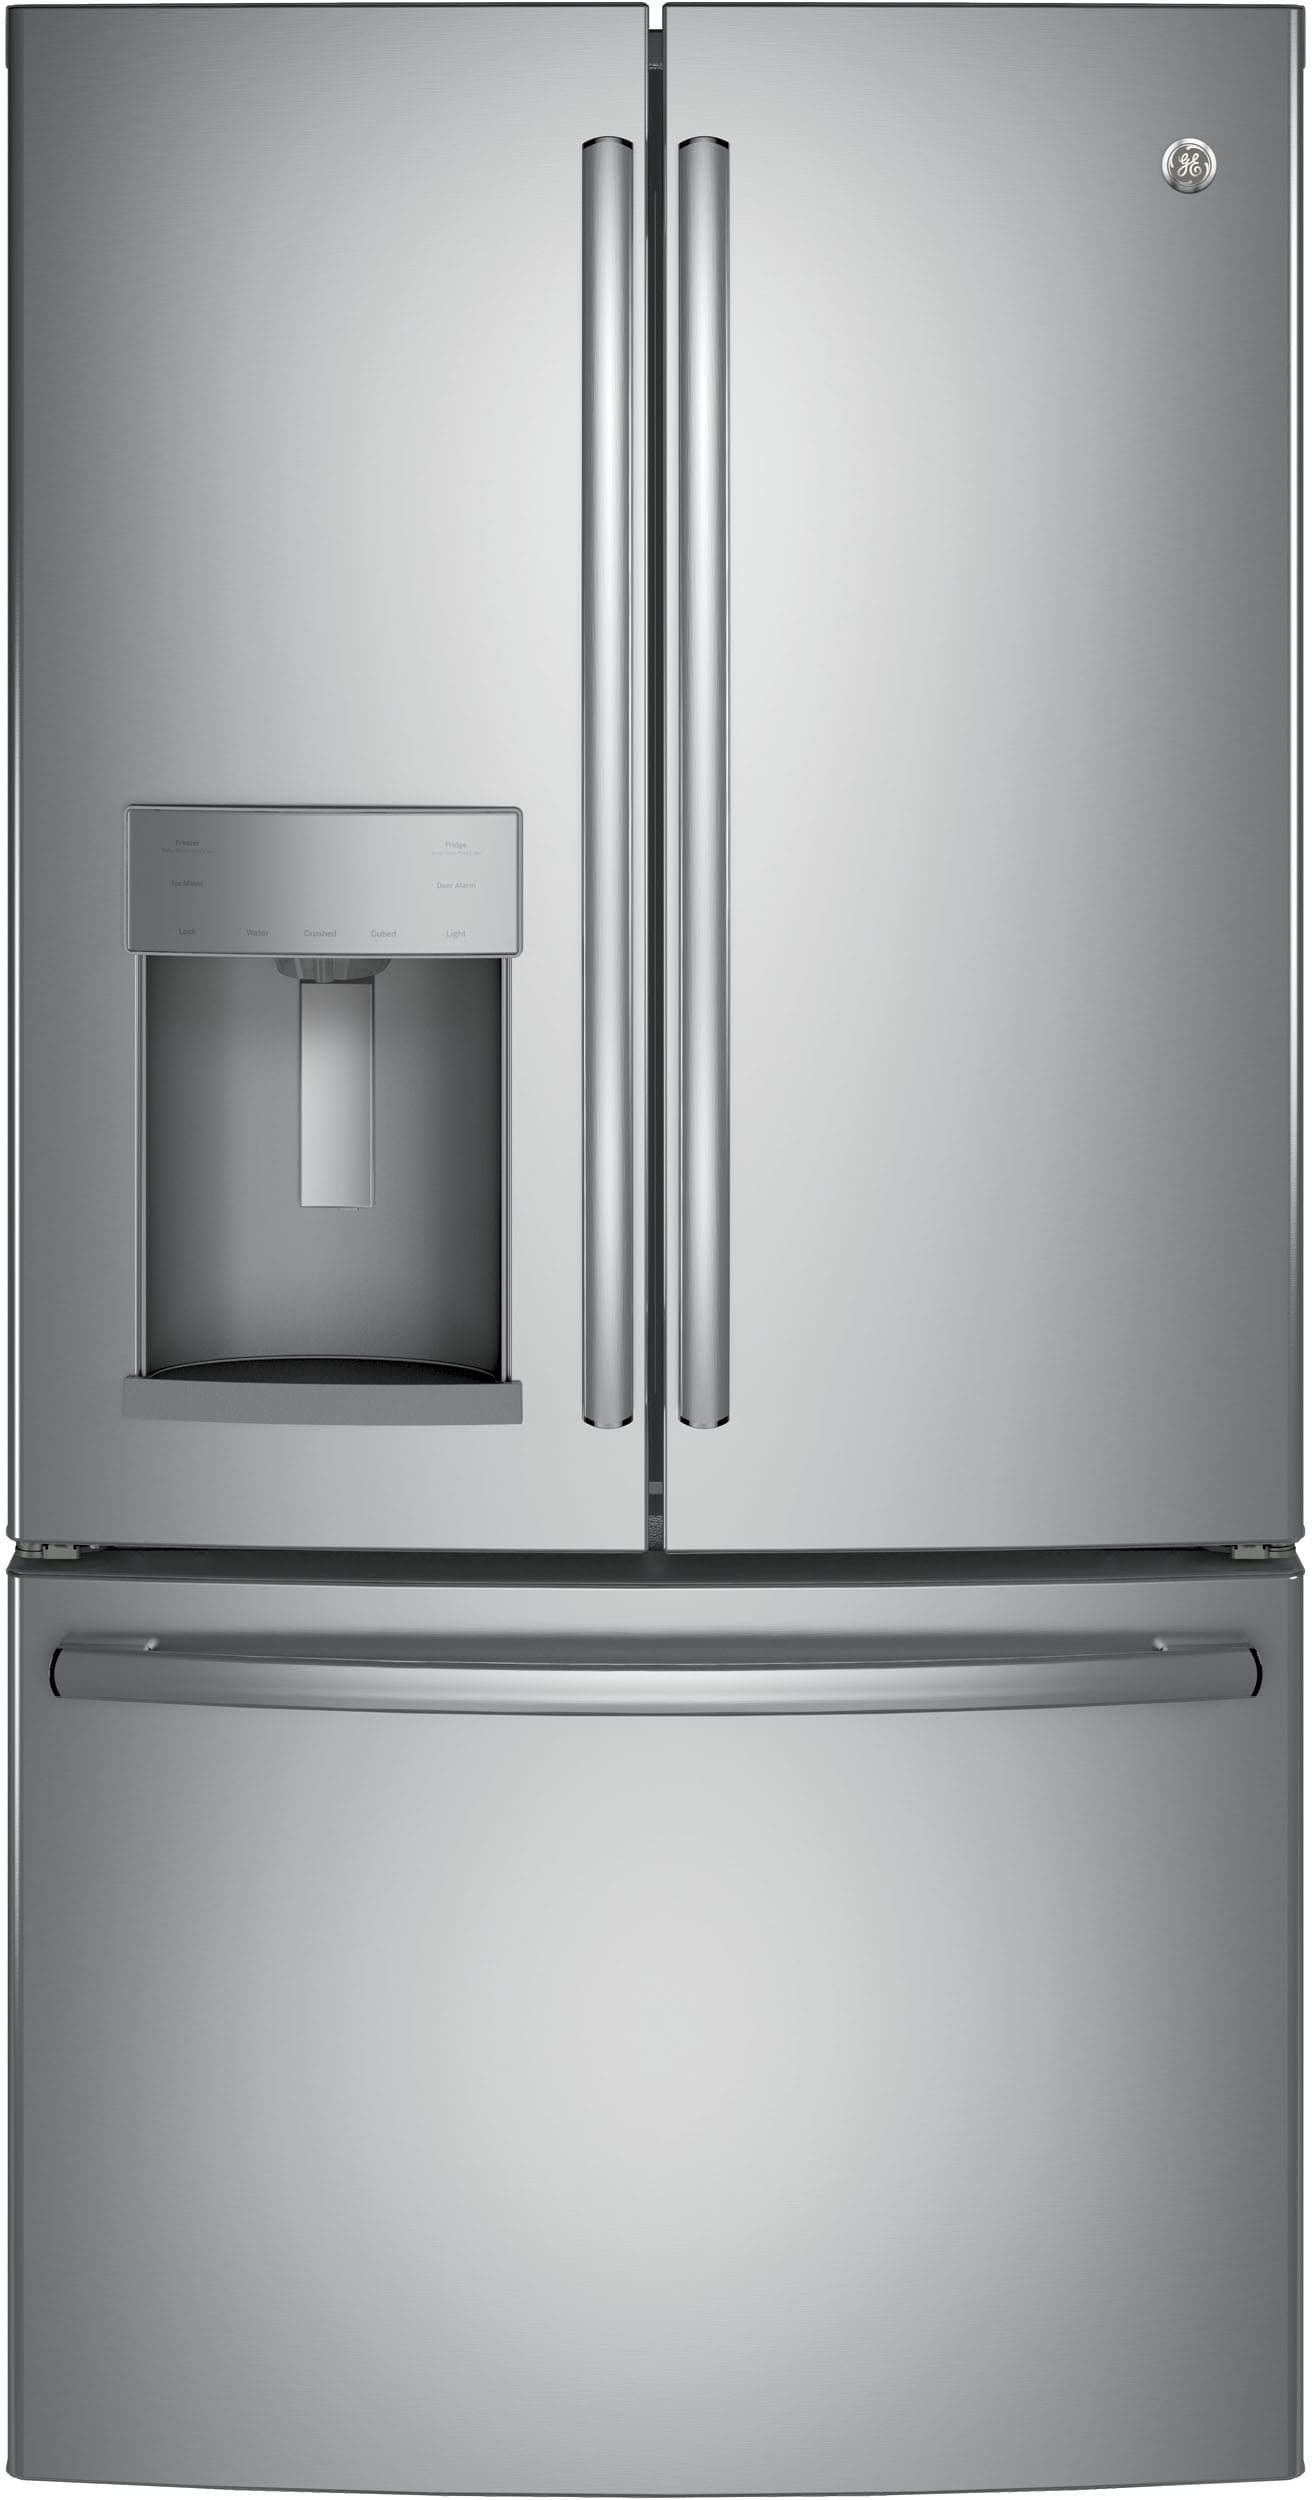 GE GYE22HSKSS 36 Inch Counter Depth French Door Refrigerator with